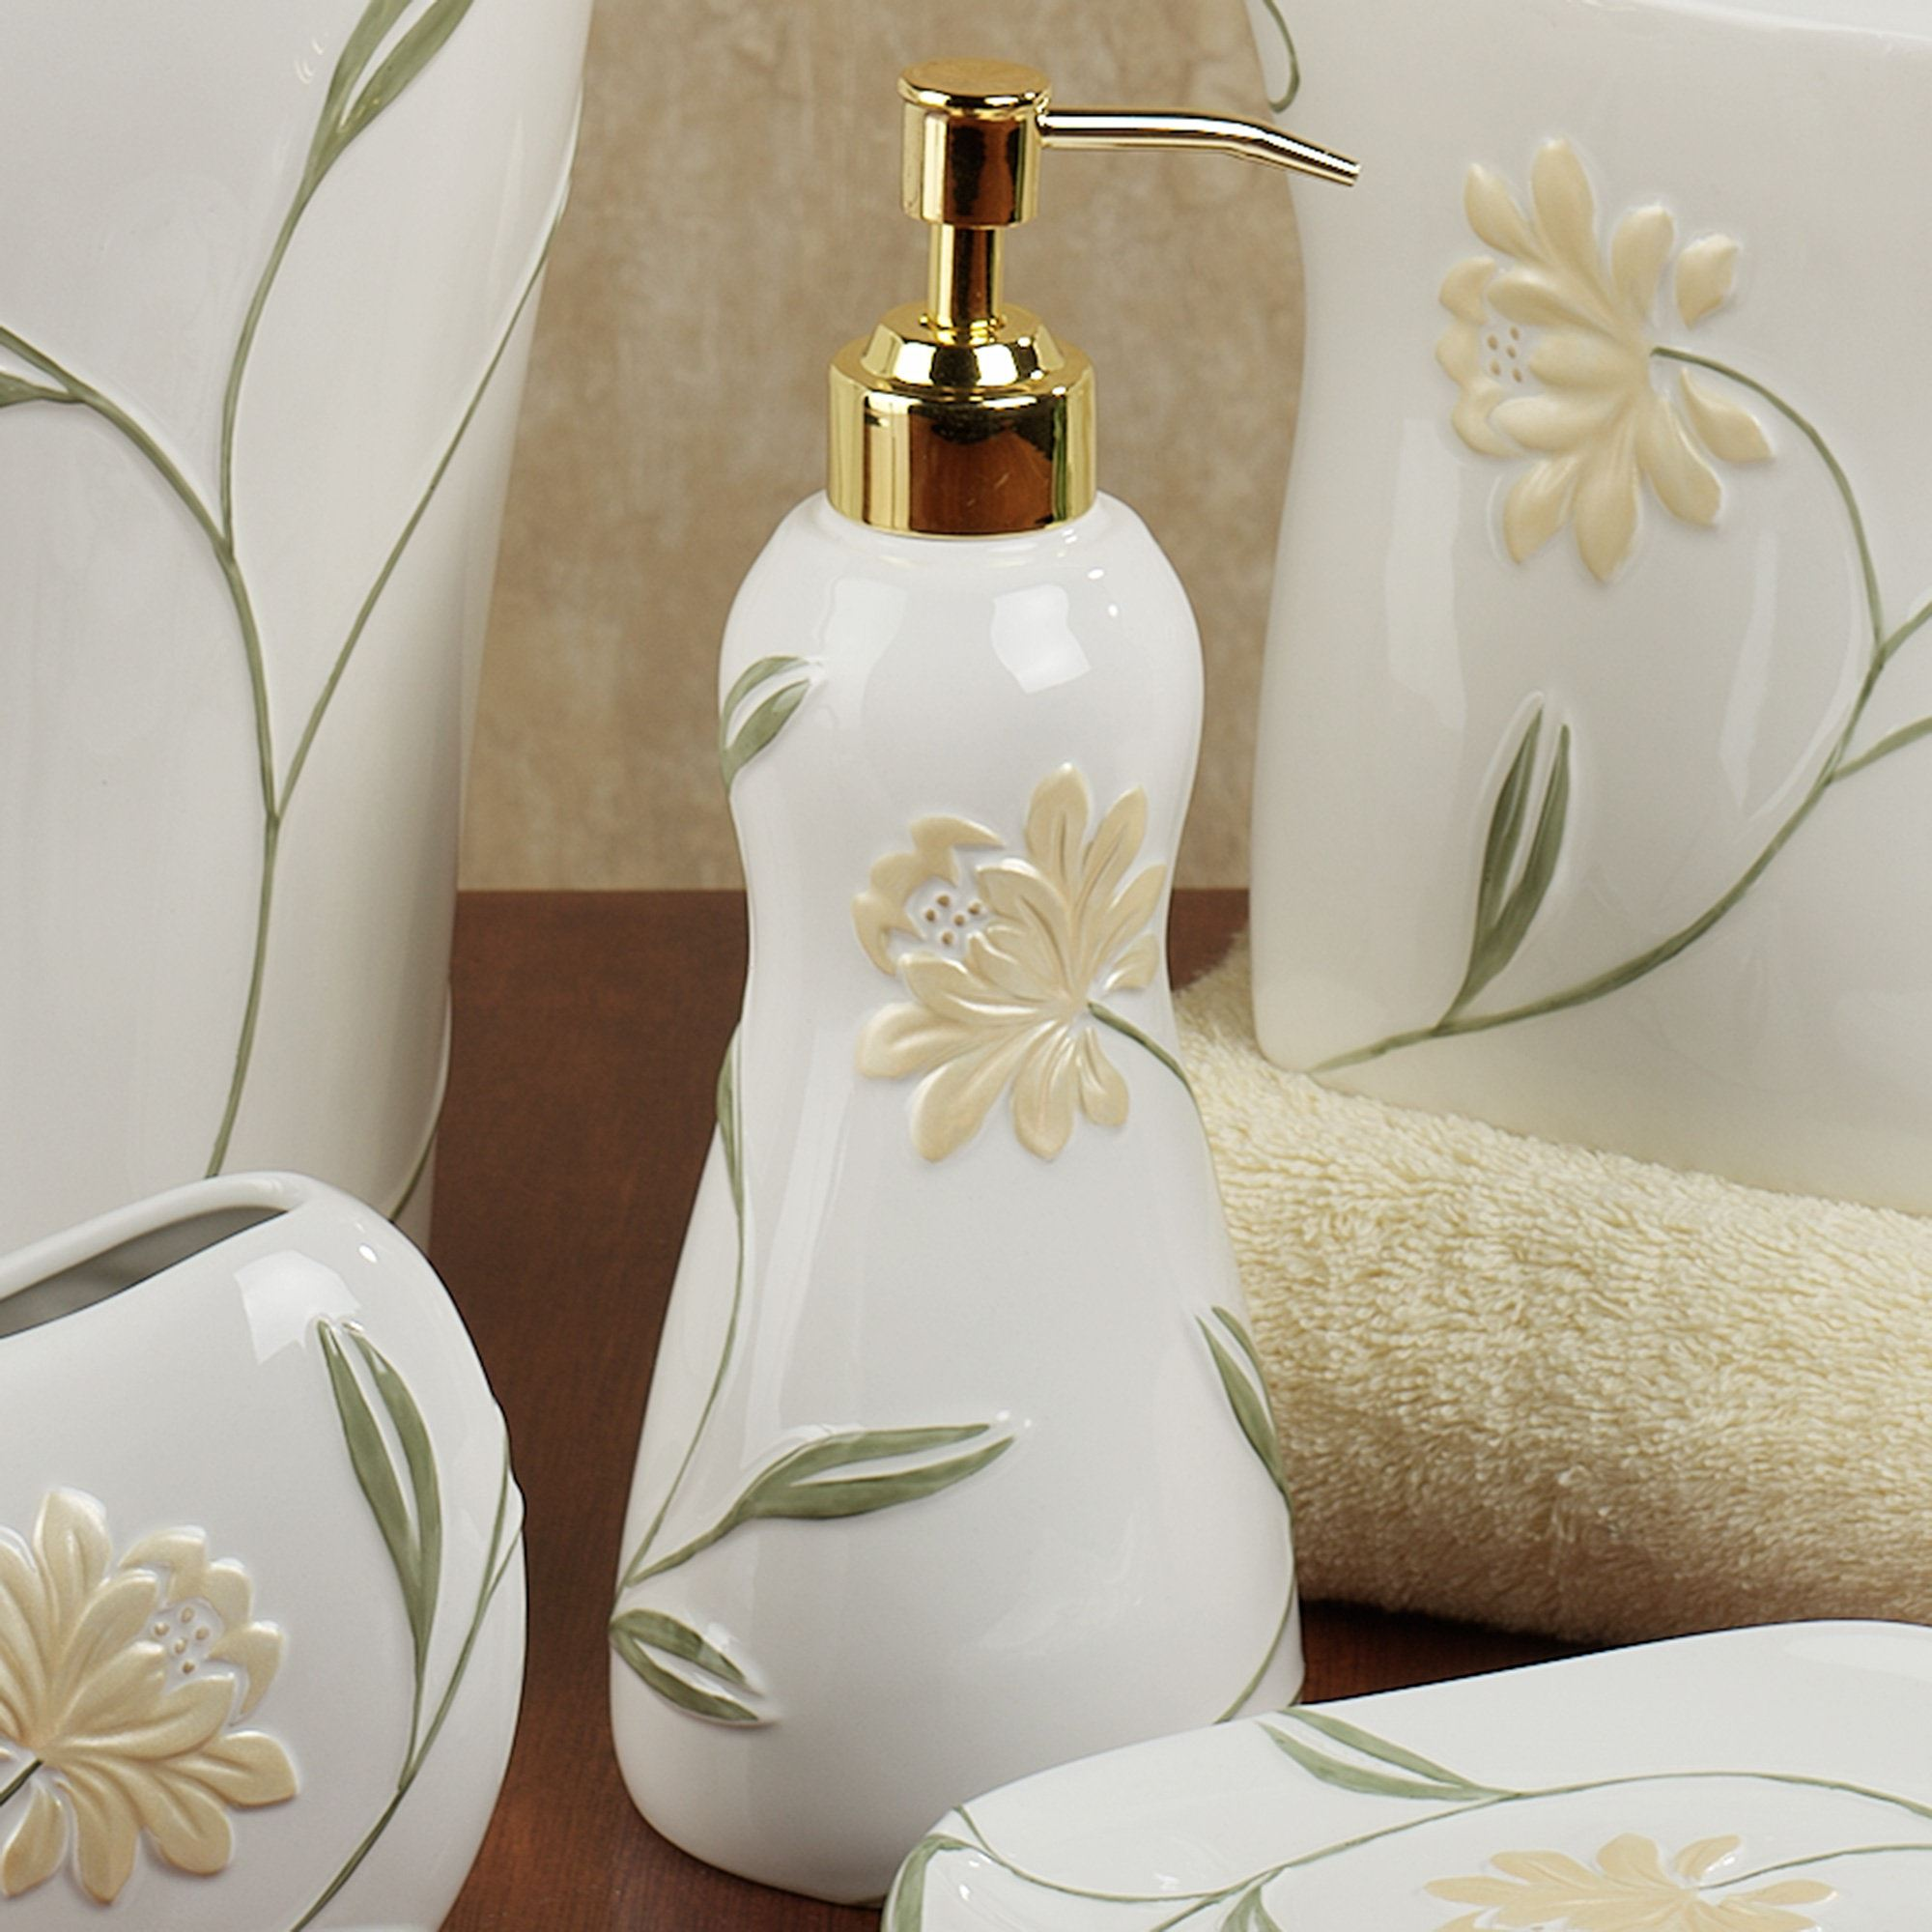 Penelope bath accessories by croscill - Bathroom soap and lotion dispenser set ...